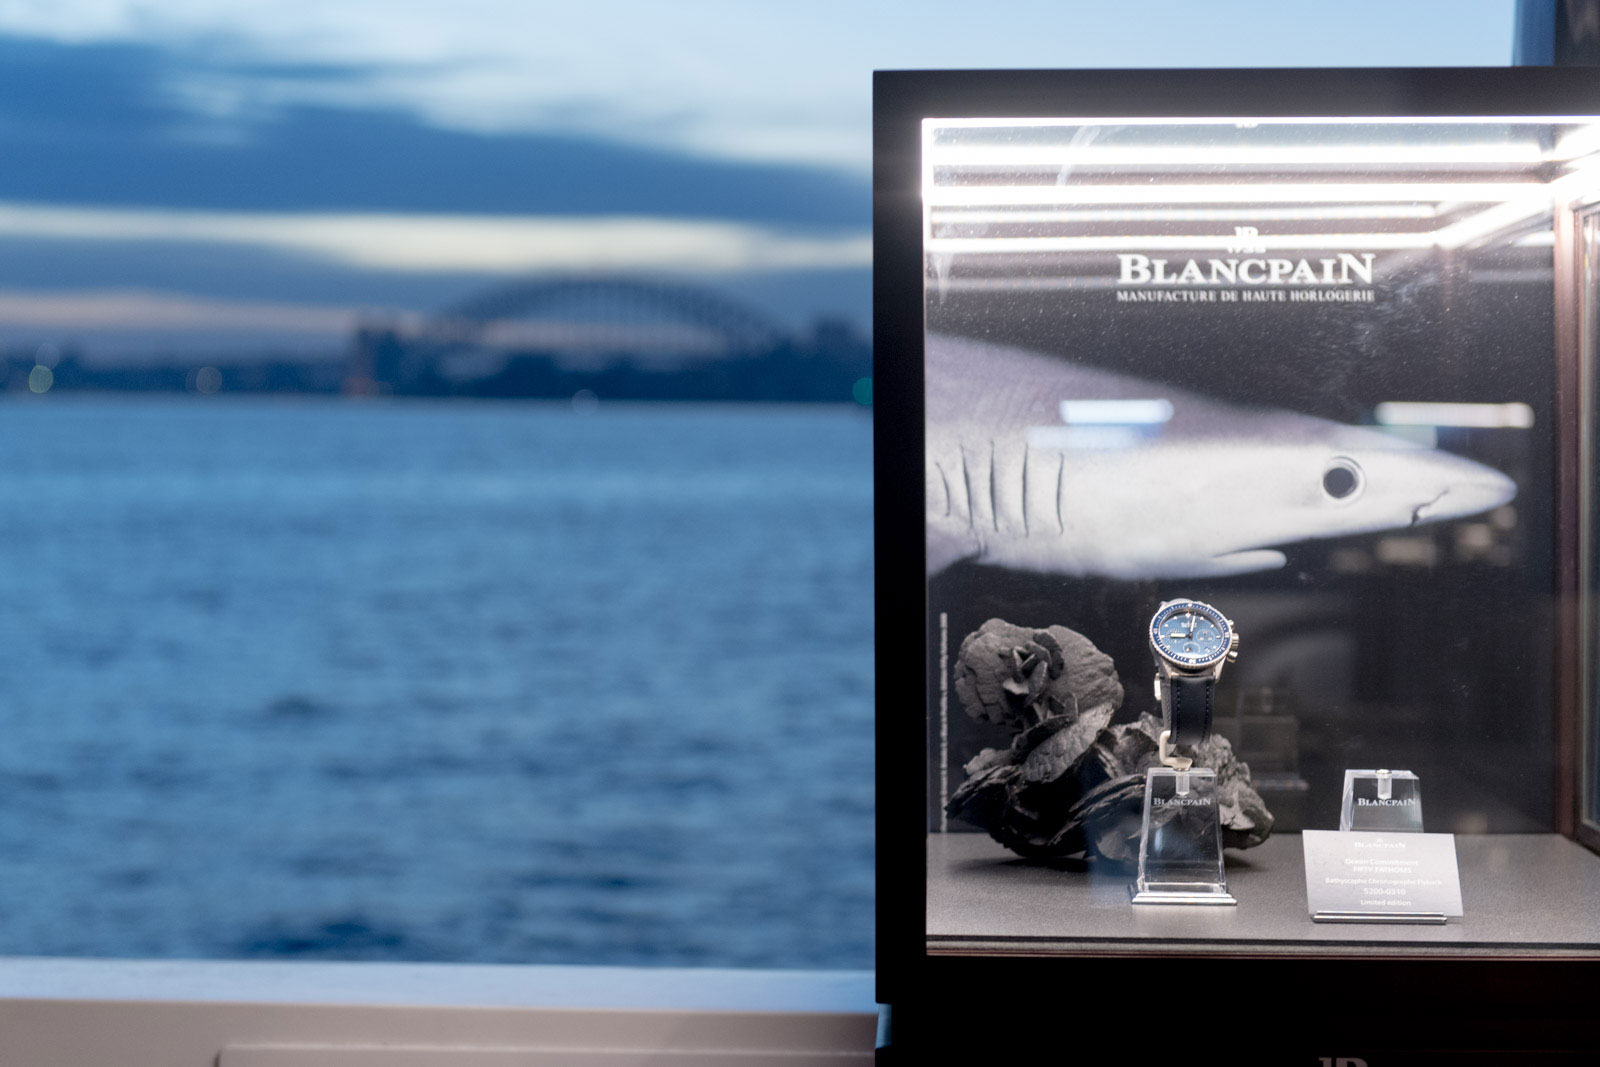 blancpain-syd-event-2016-4